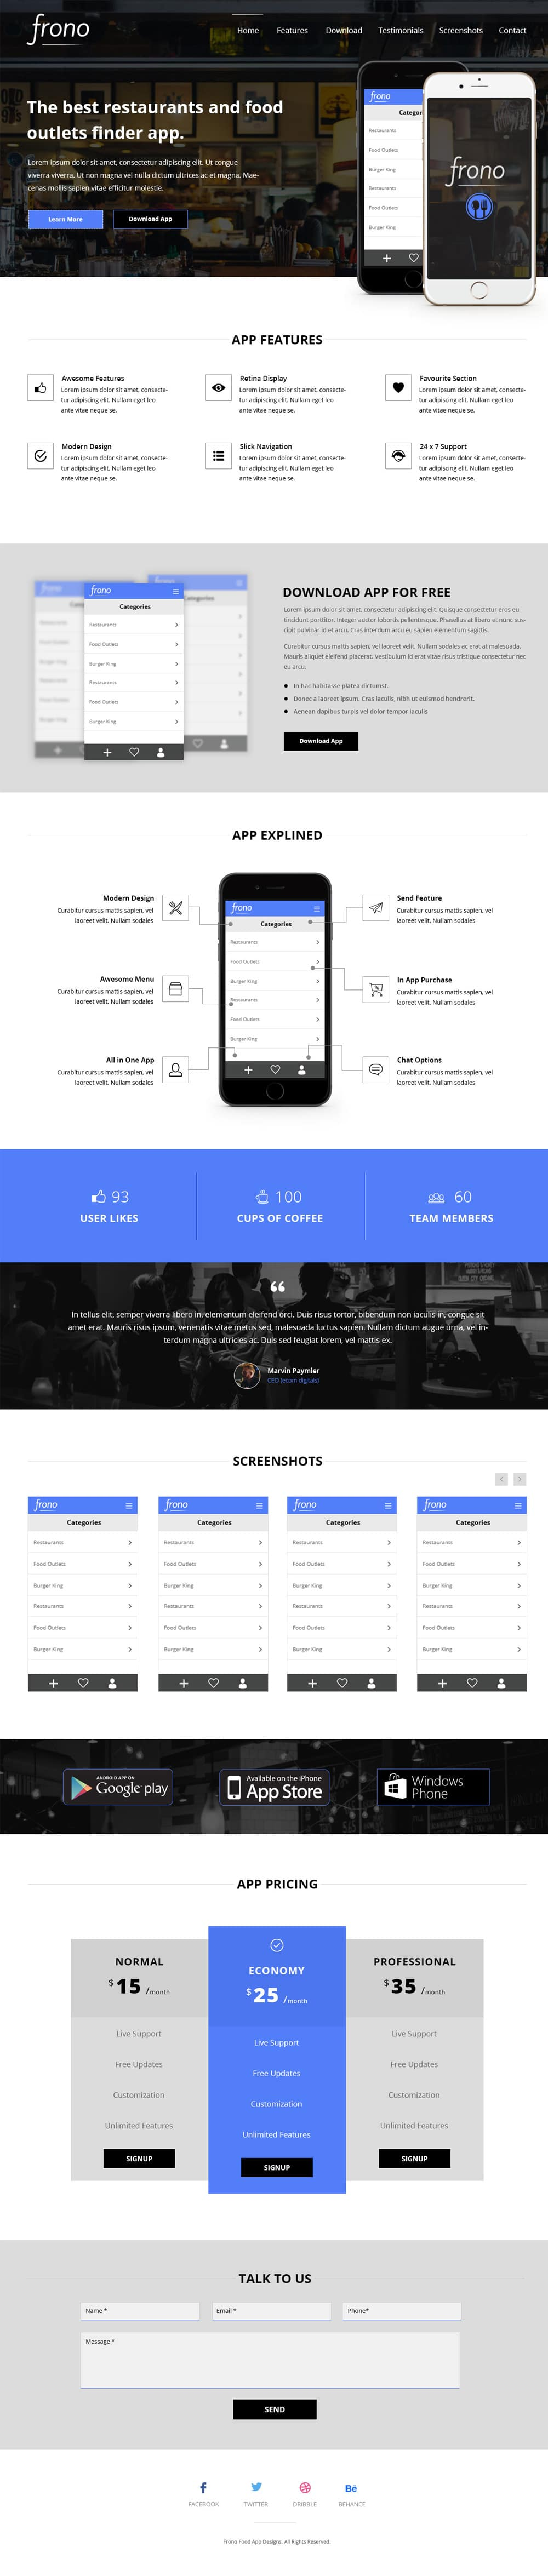 Frono App Landing Page Template PSD